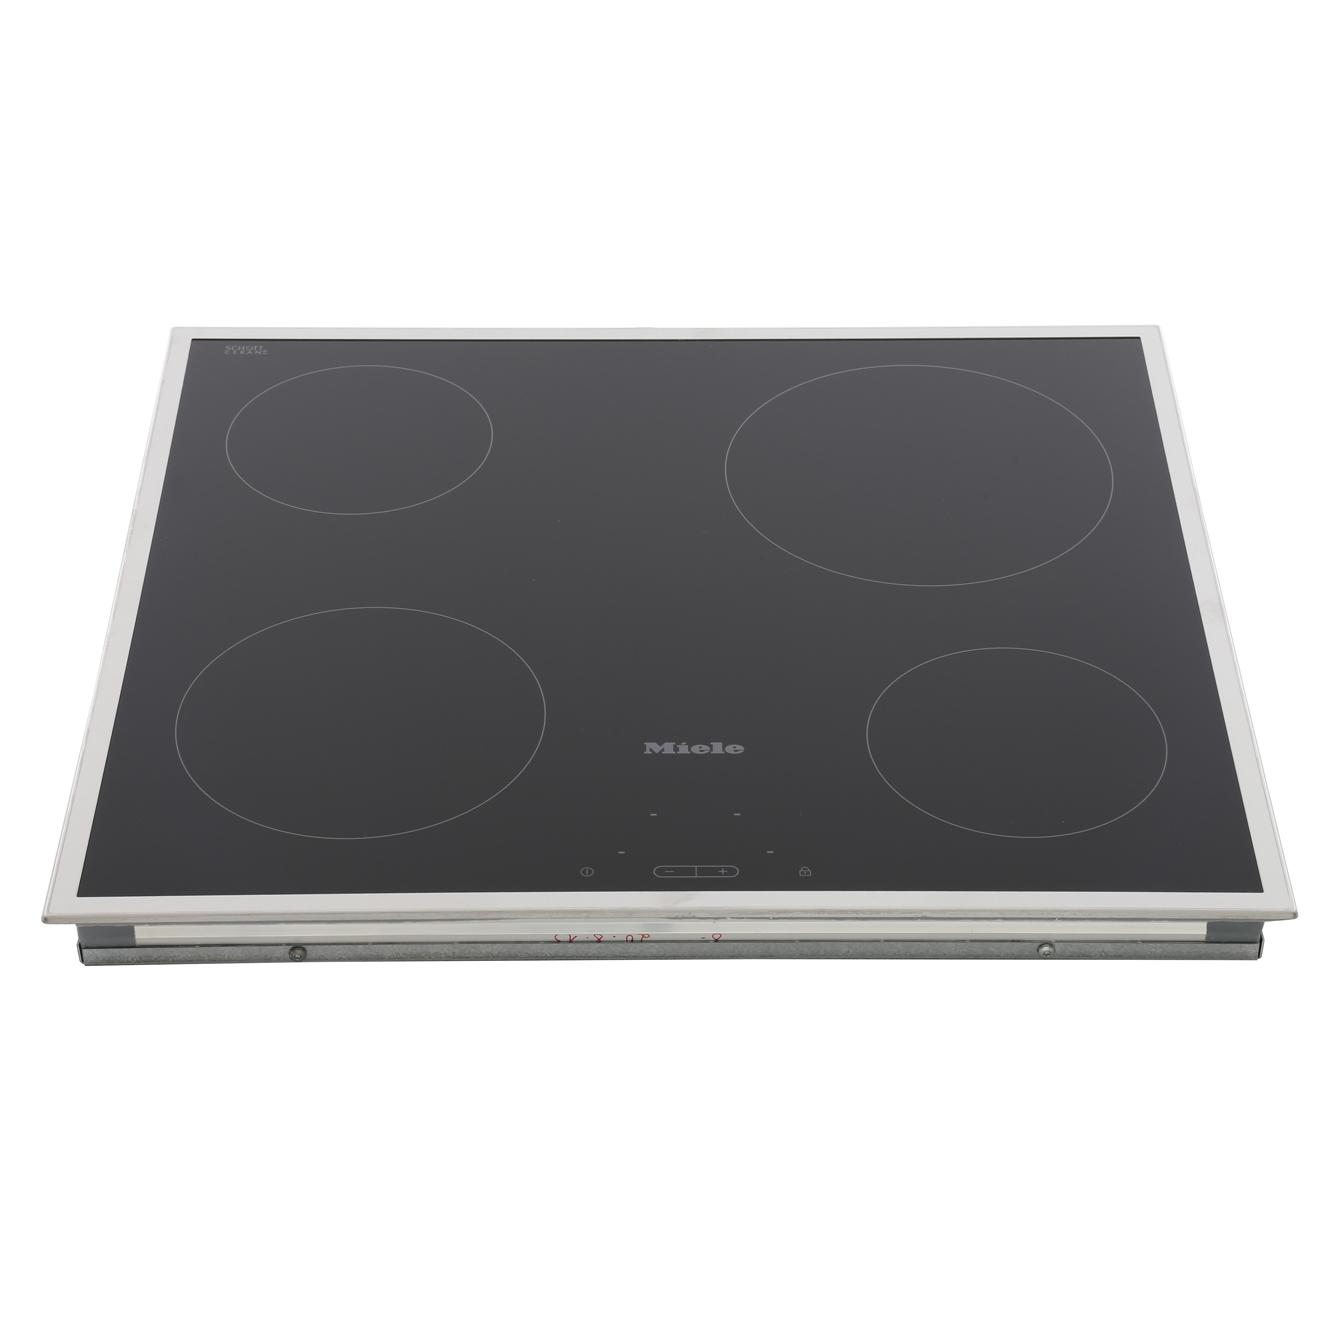 Buy Miele Km5600 Stainless Steel Frame Ceramic Hob